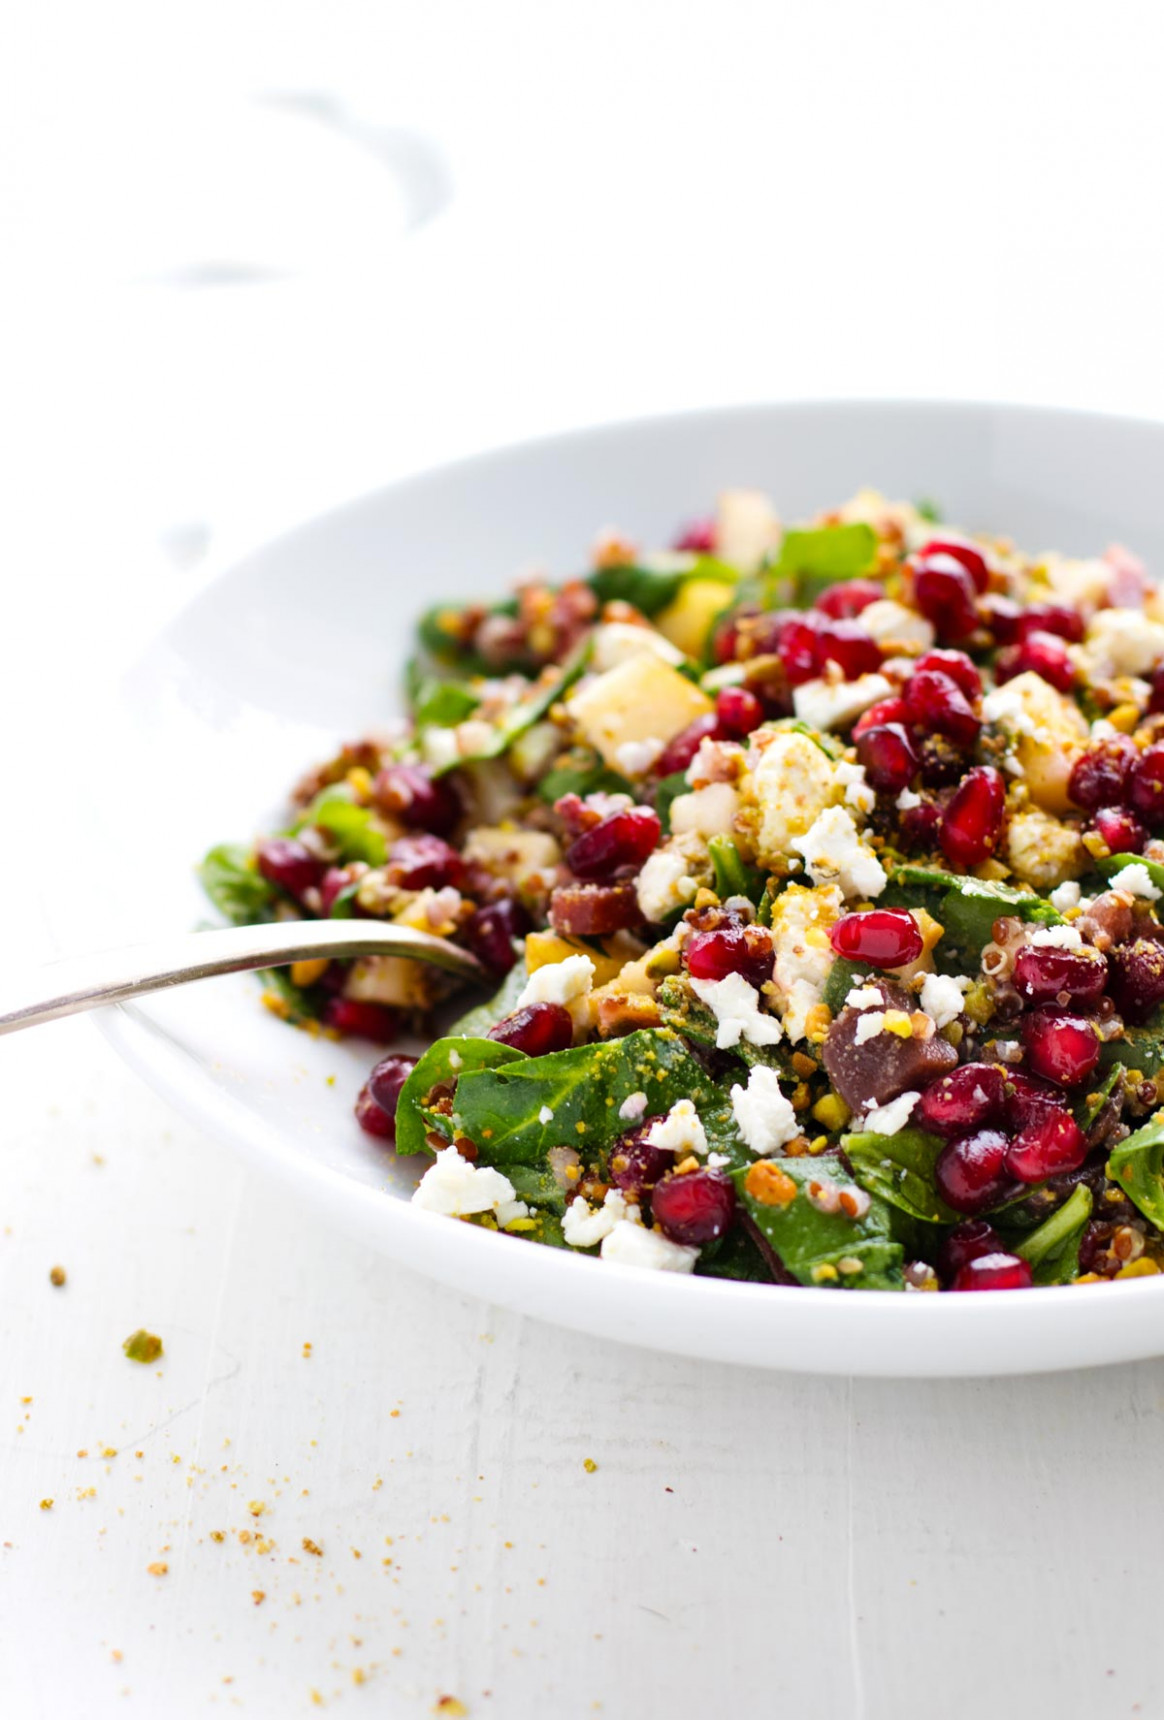 Sexy salad recipes that will rock your world   The Red Fairy ..